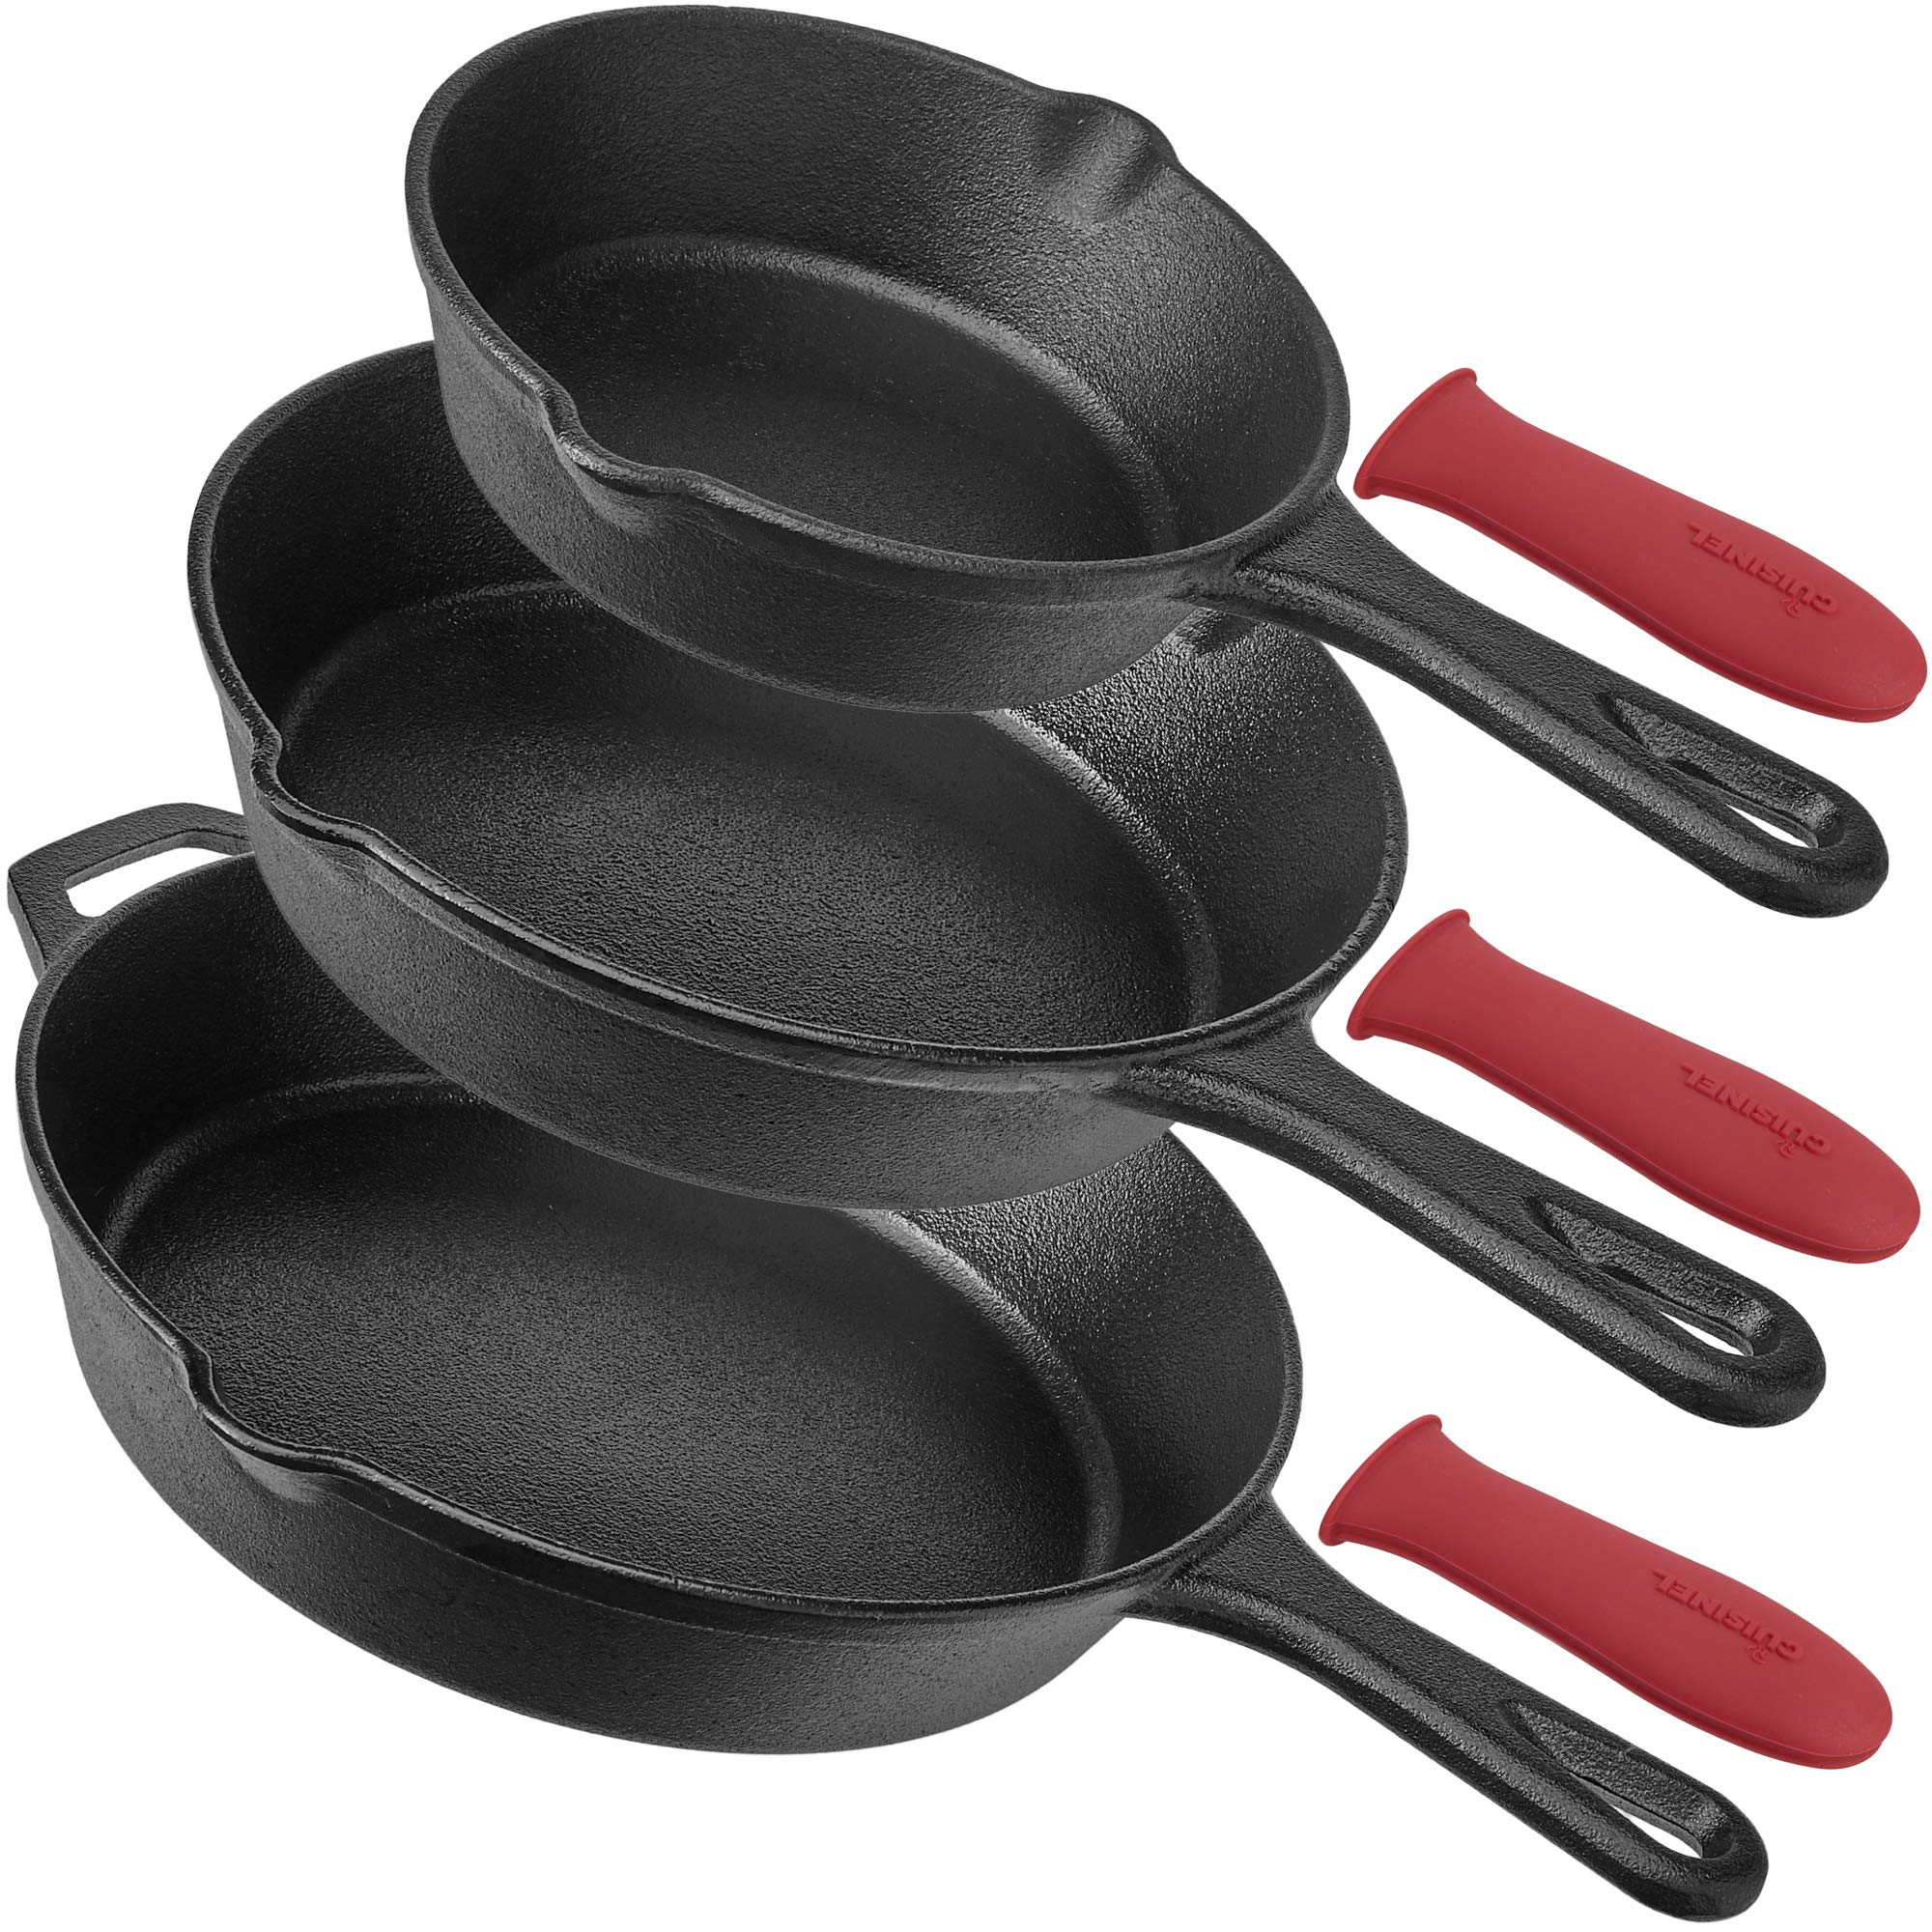 Pre-Seasoned Cast Iron Skillet 3-Piece Chef Set (6-Inch 8-Inch and 10-Inch) Oven Safe Cookware - 3 Heat-Resistant Holders - Indoor and Outdoor Use - Grill, Stovetop, Induction Safe by cuisinel